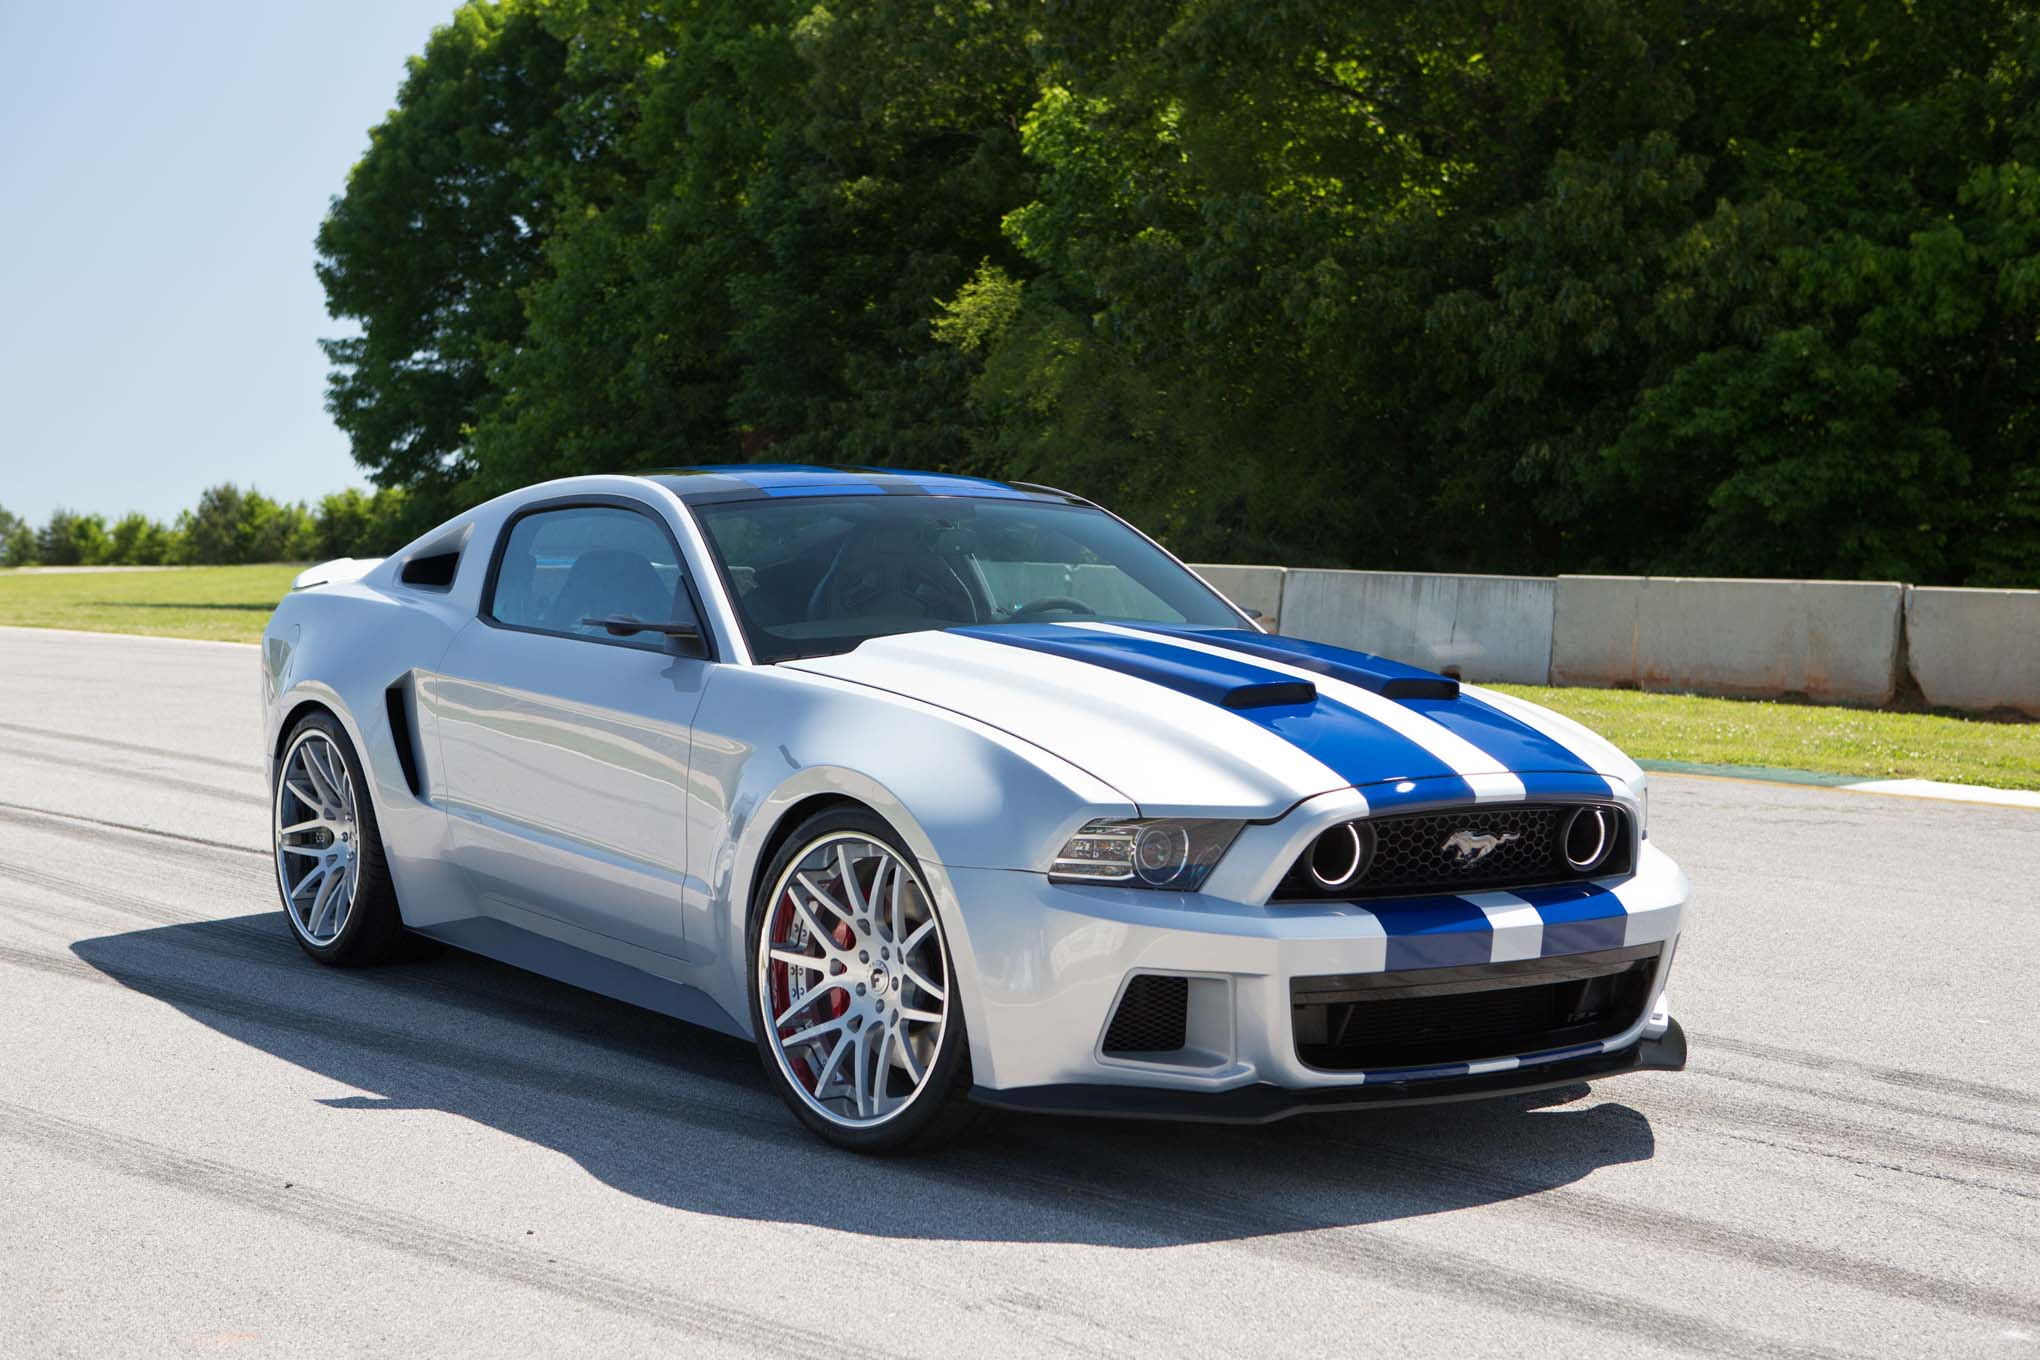 2014 Ford Mustang #23